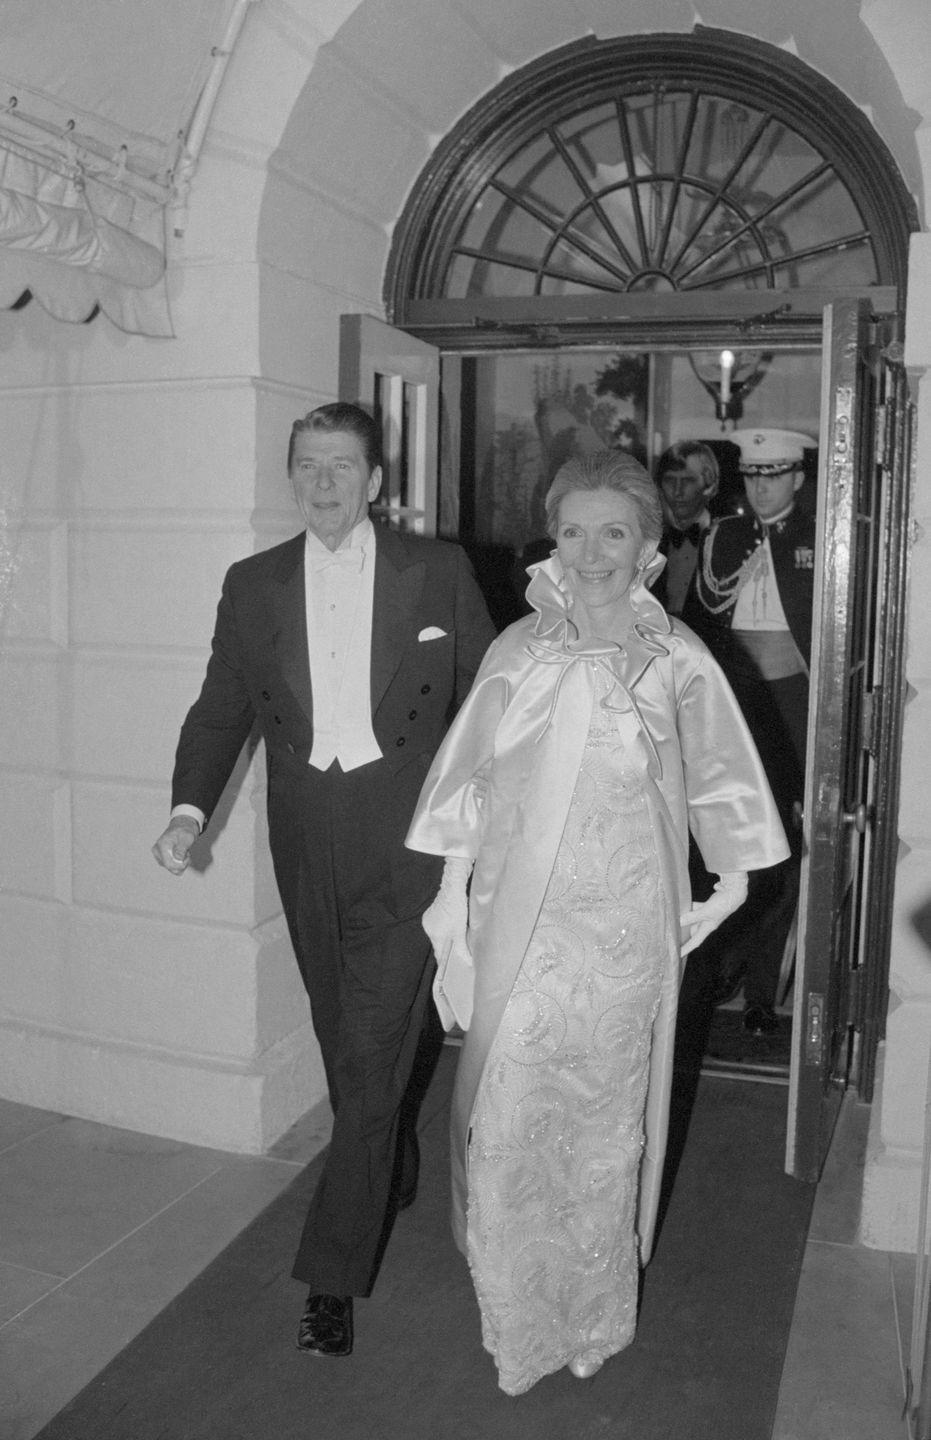 """<p>The Reagans depart from the White House in 1981 en route to the inaugural balls—yes, plural. The couple came under fire for the expense of their inaugural festivities, which included <a href=""""https://www.washingtonpost.com/archive/local/1980/12/10/eight-invitation-only-inaugural-balls-on-reagans-list-but-not-disco-party/34eb2c25-947c-4678-aa6a-a5b2953f07eb/"""" rel=""""nofollow noopener"""" target=""""_blank"""" data-ylk=""""slk:eight balls"""" class=""""link rapid-noclick-resp"""">eight balls</a> held at expensive venues, like The Kennedy Center and the Pension Building. </p>"""